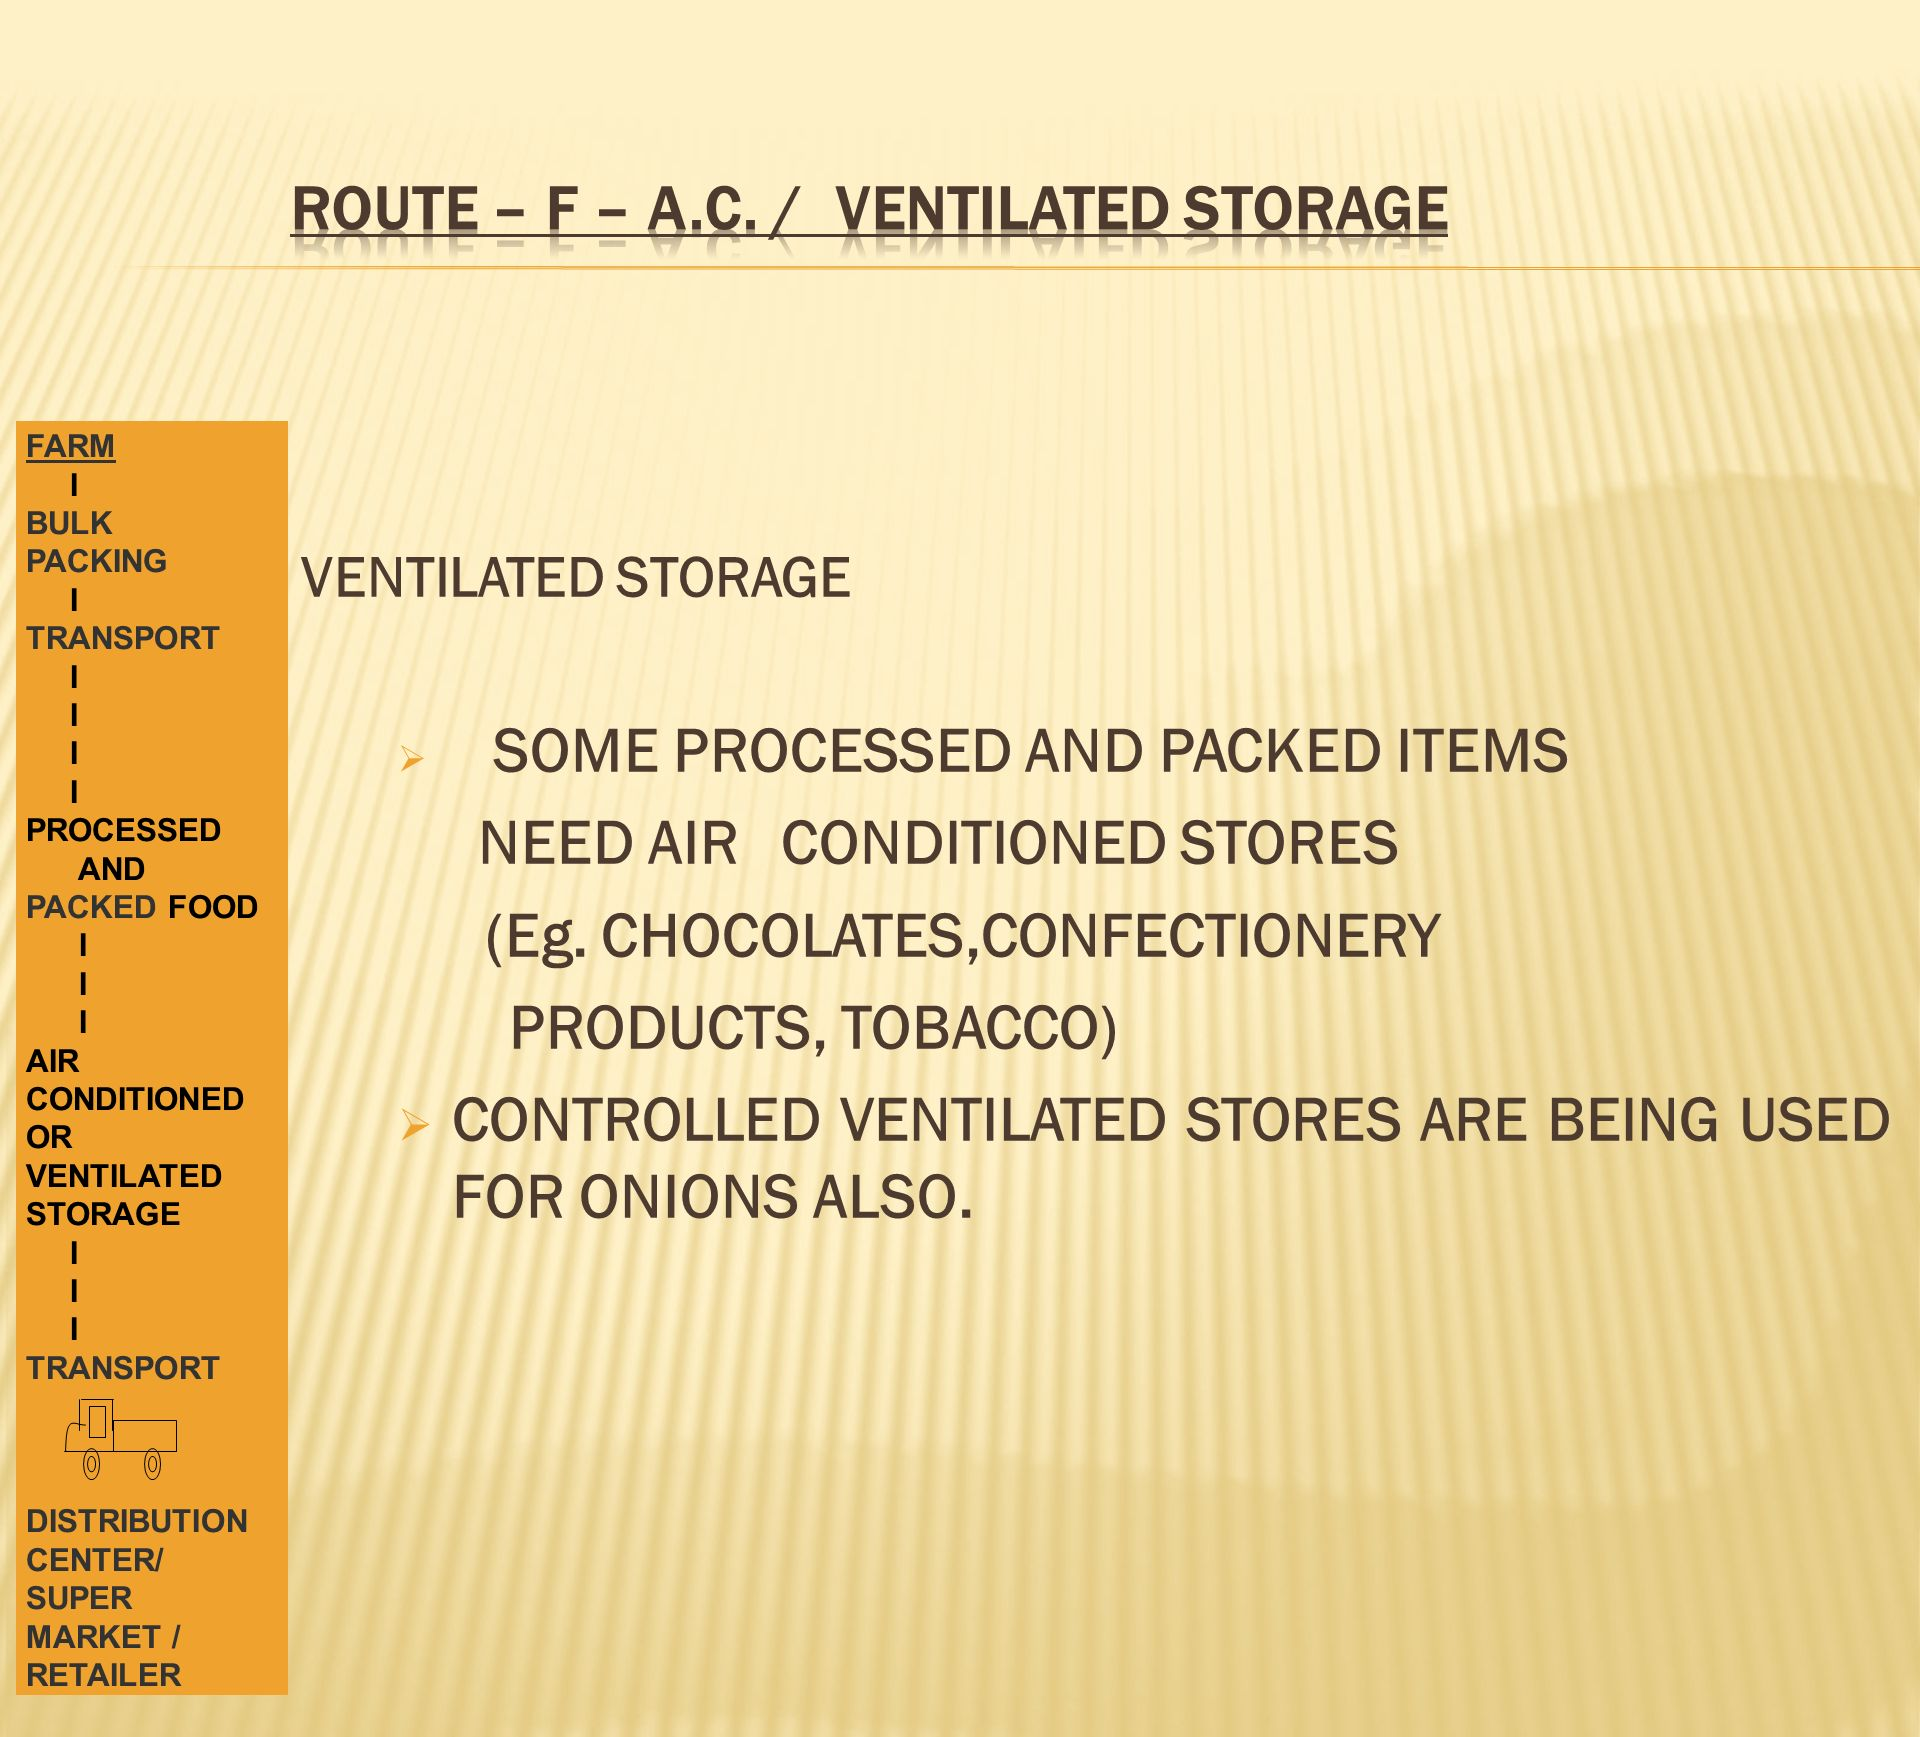 ROUTE – F – A.C. / VENTILATED STORAGE